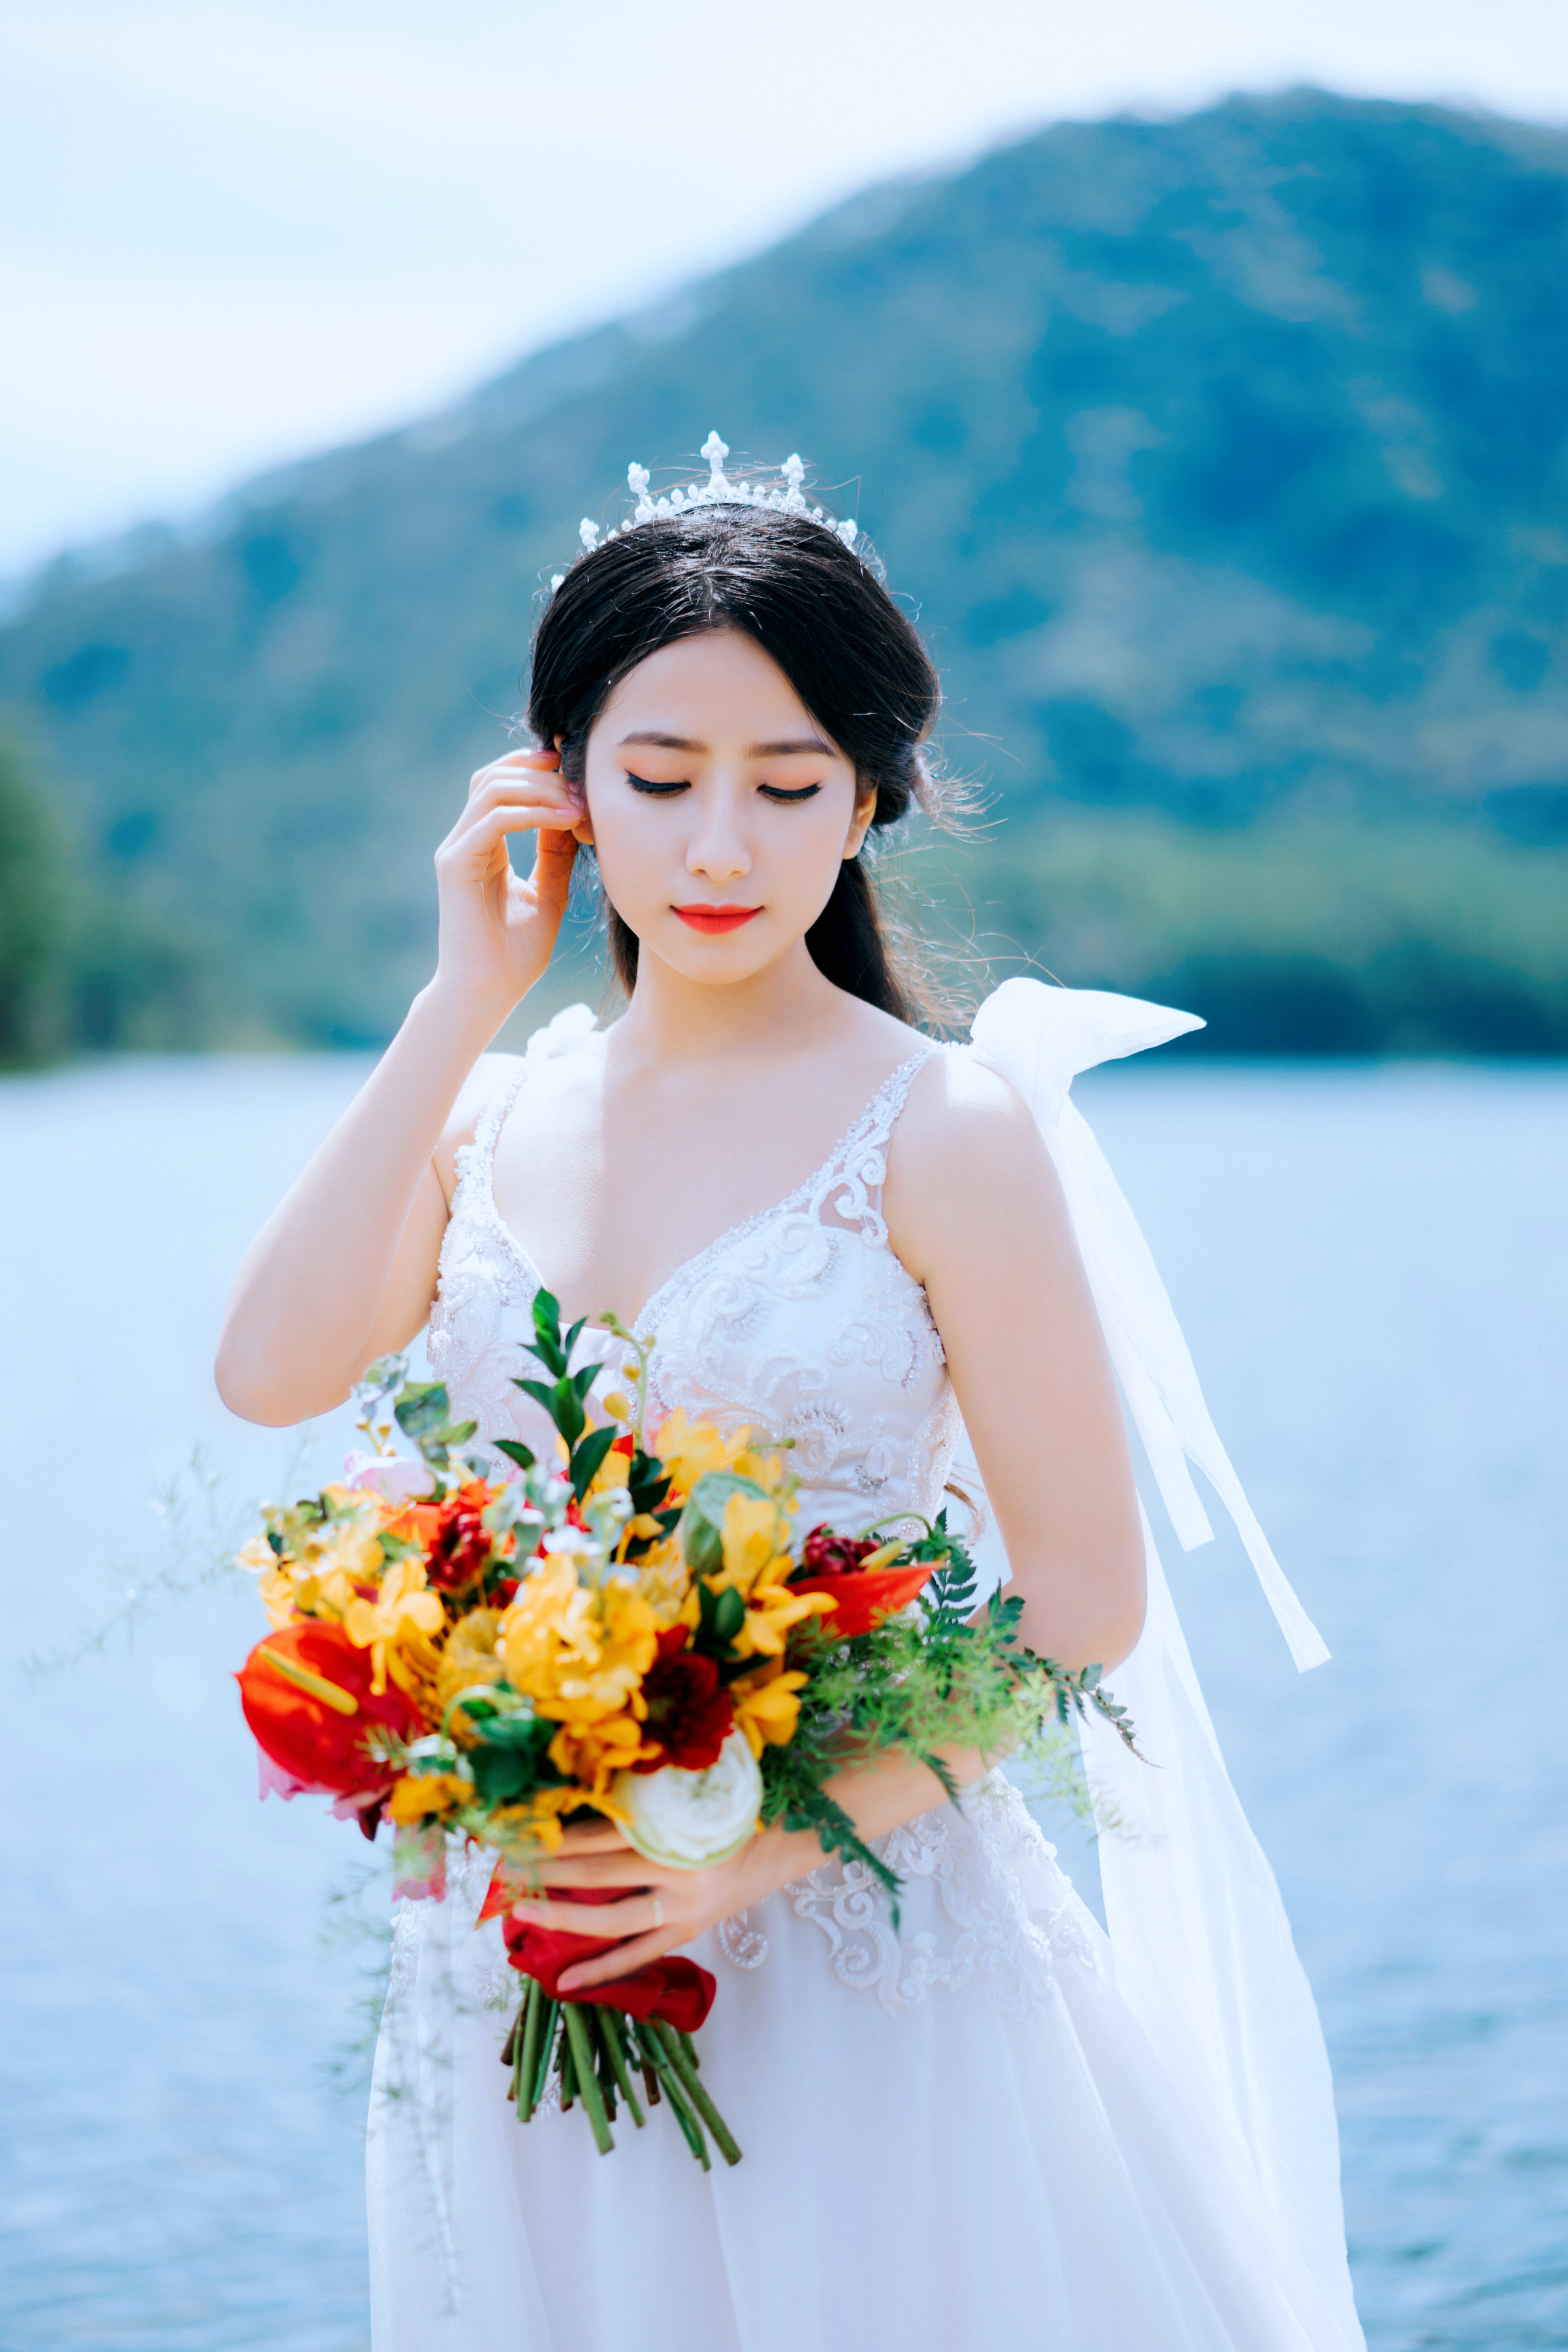 Woman Wearing Wedding Dress While Holding Her Hair